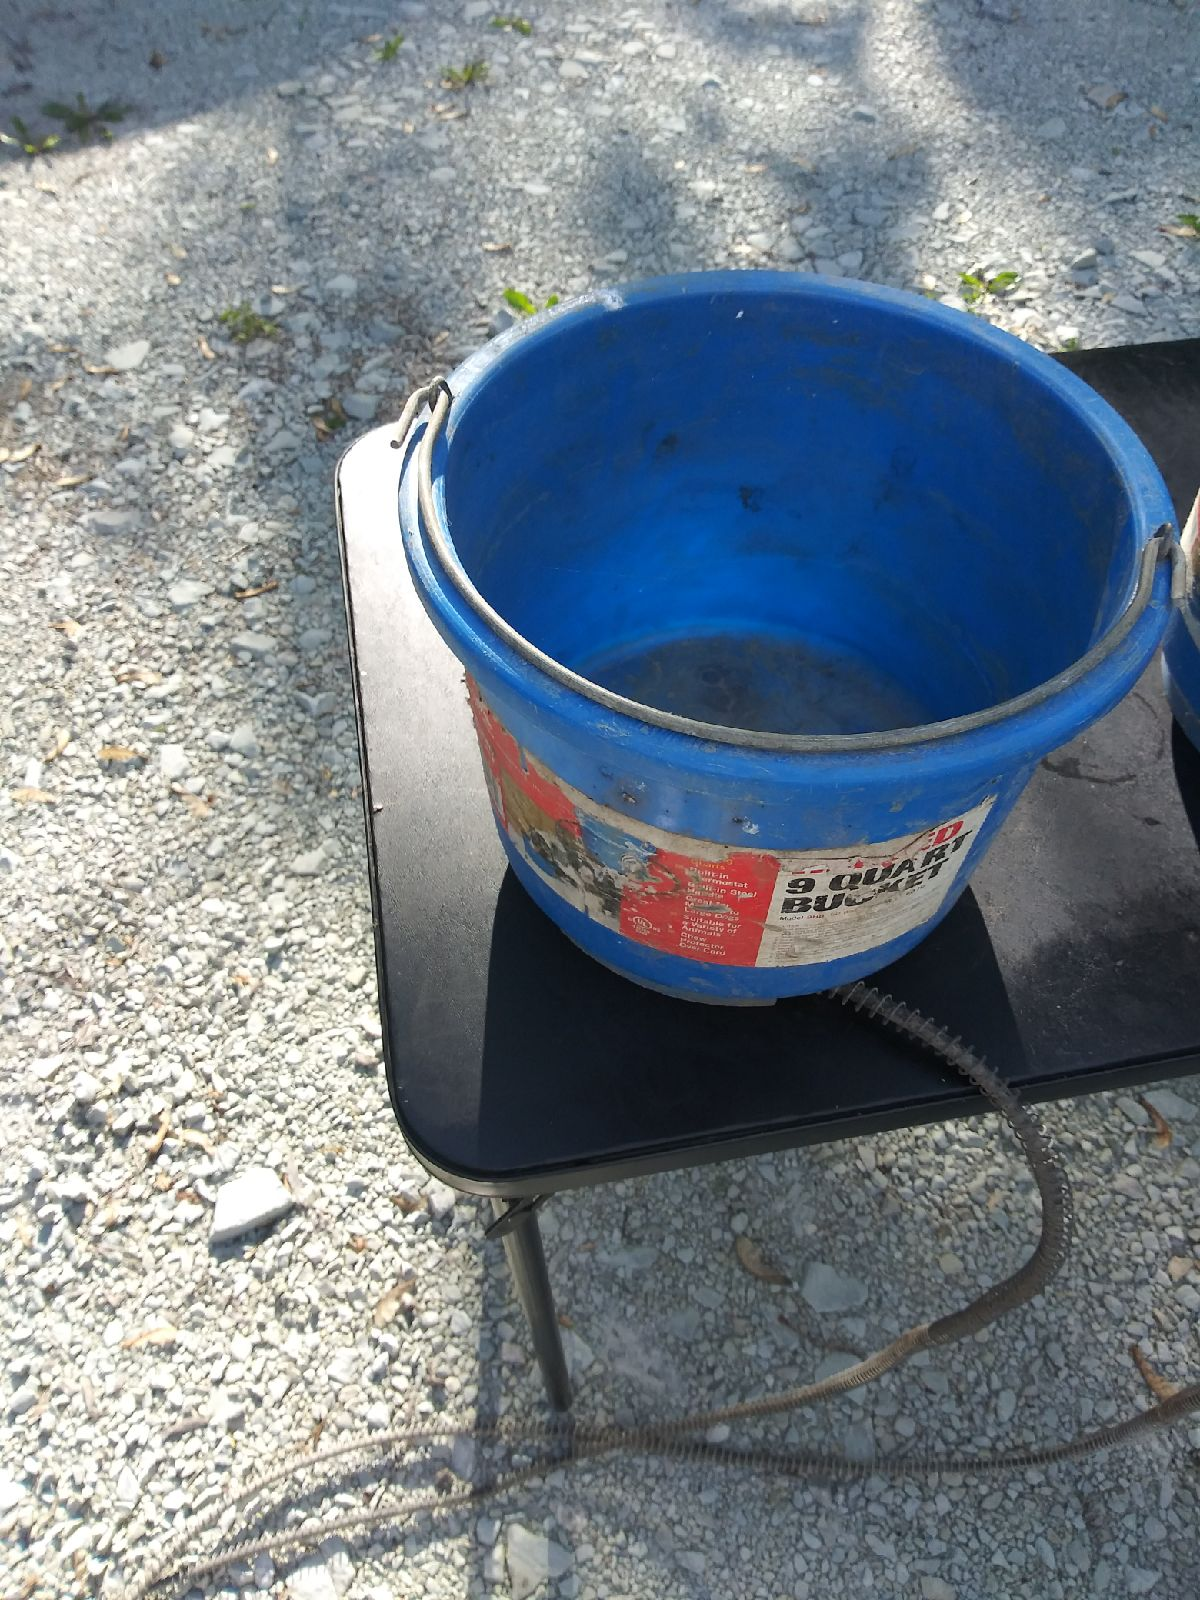 Heated 9 quart bucket